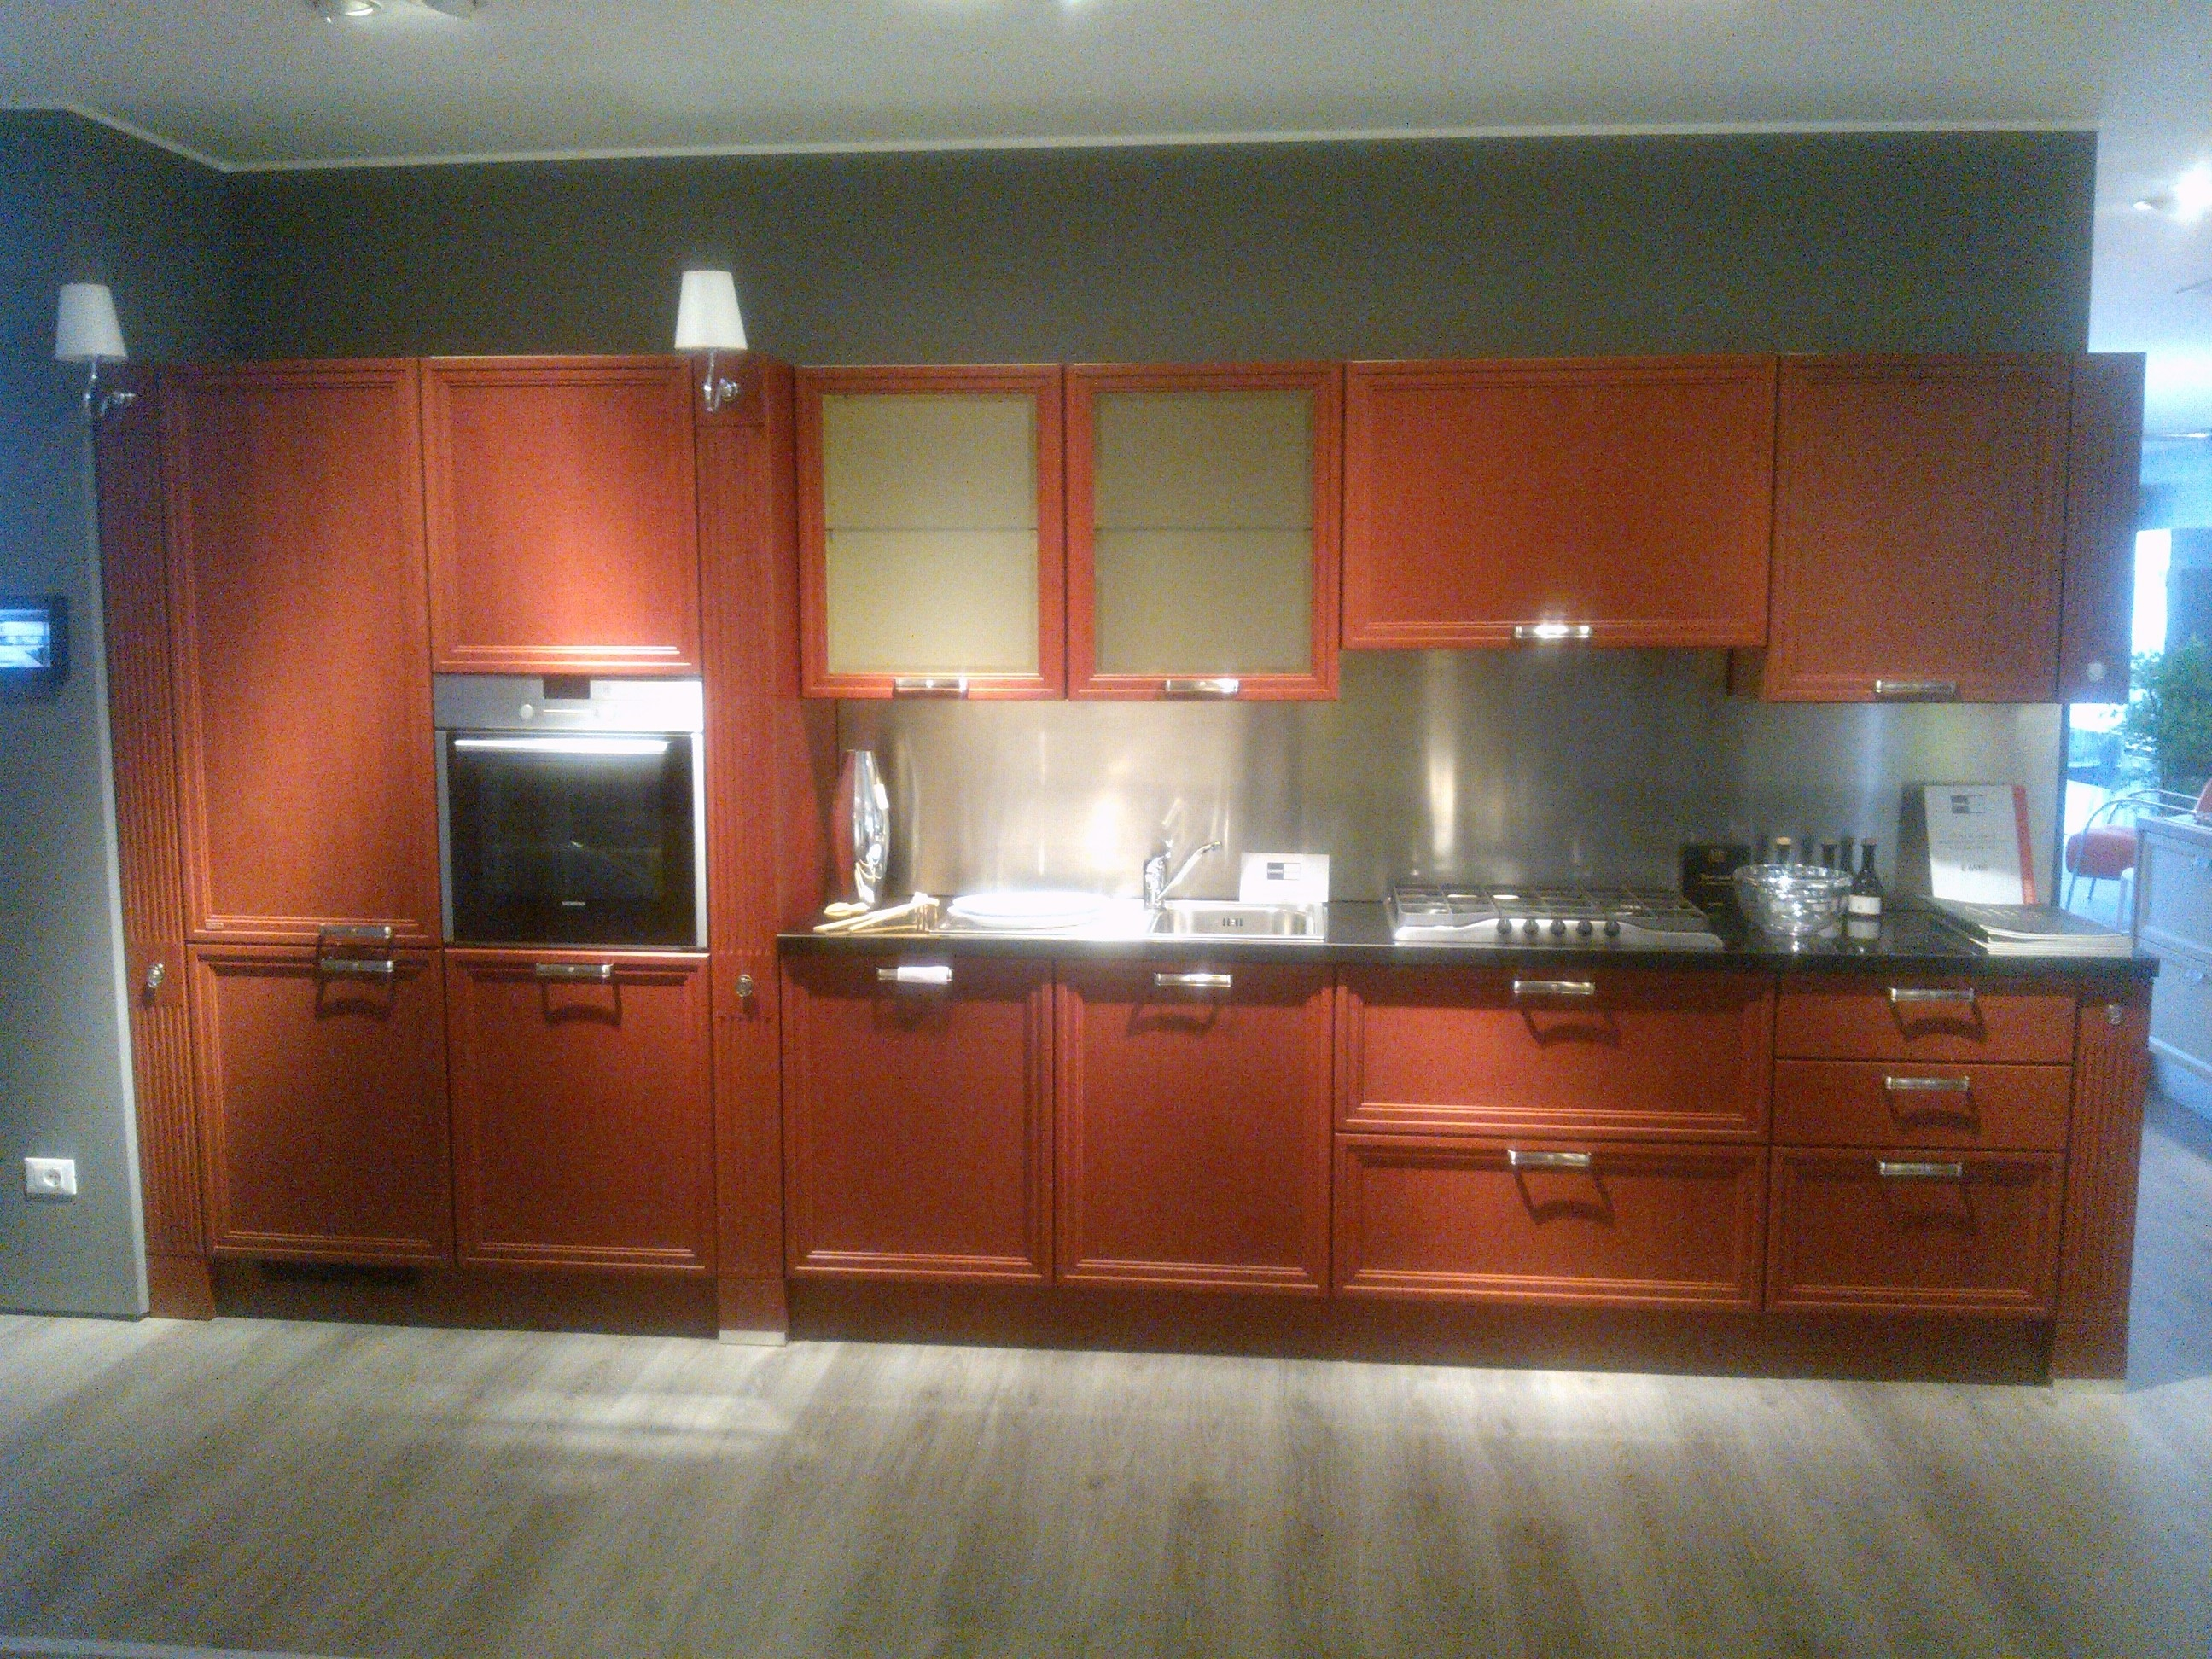 Emejing Scavolini Cucine Outlet Contemporary - Mosquee-rodez.com ...